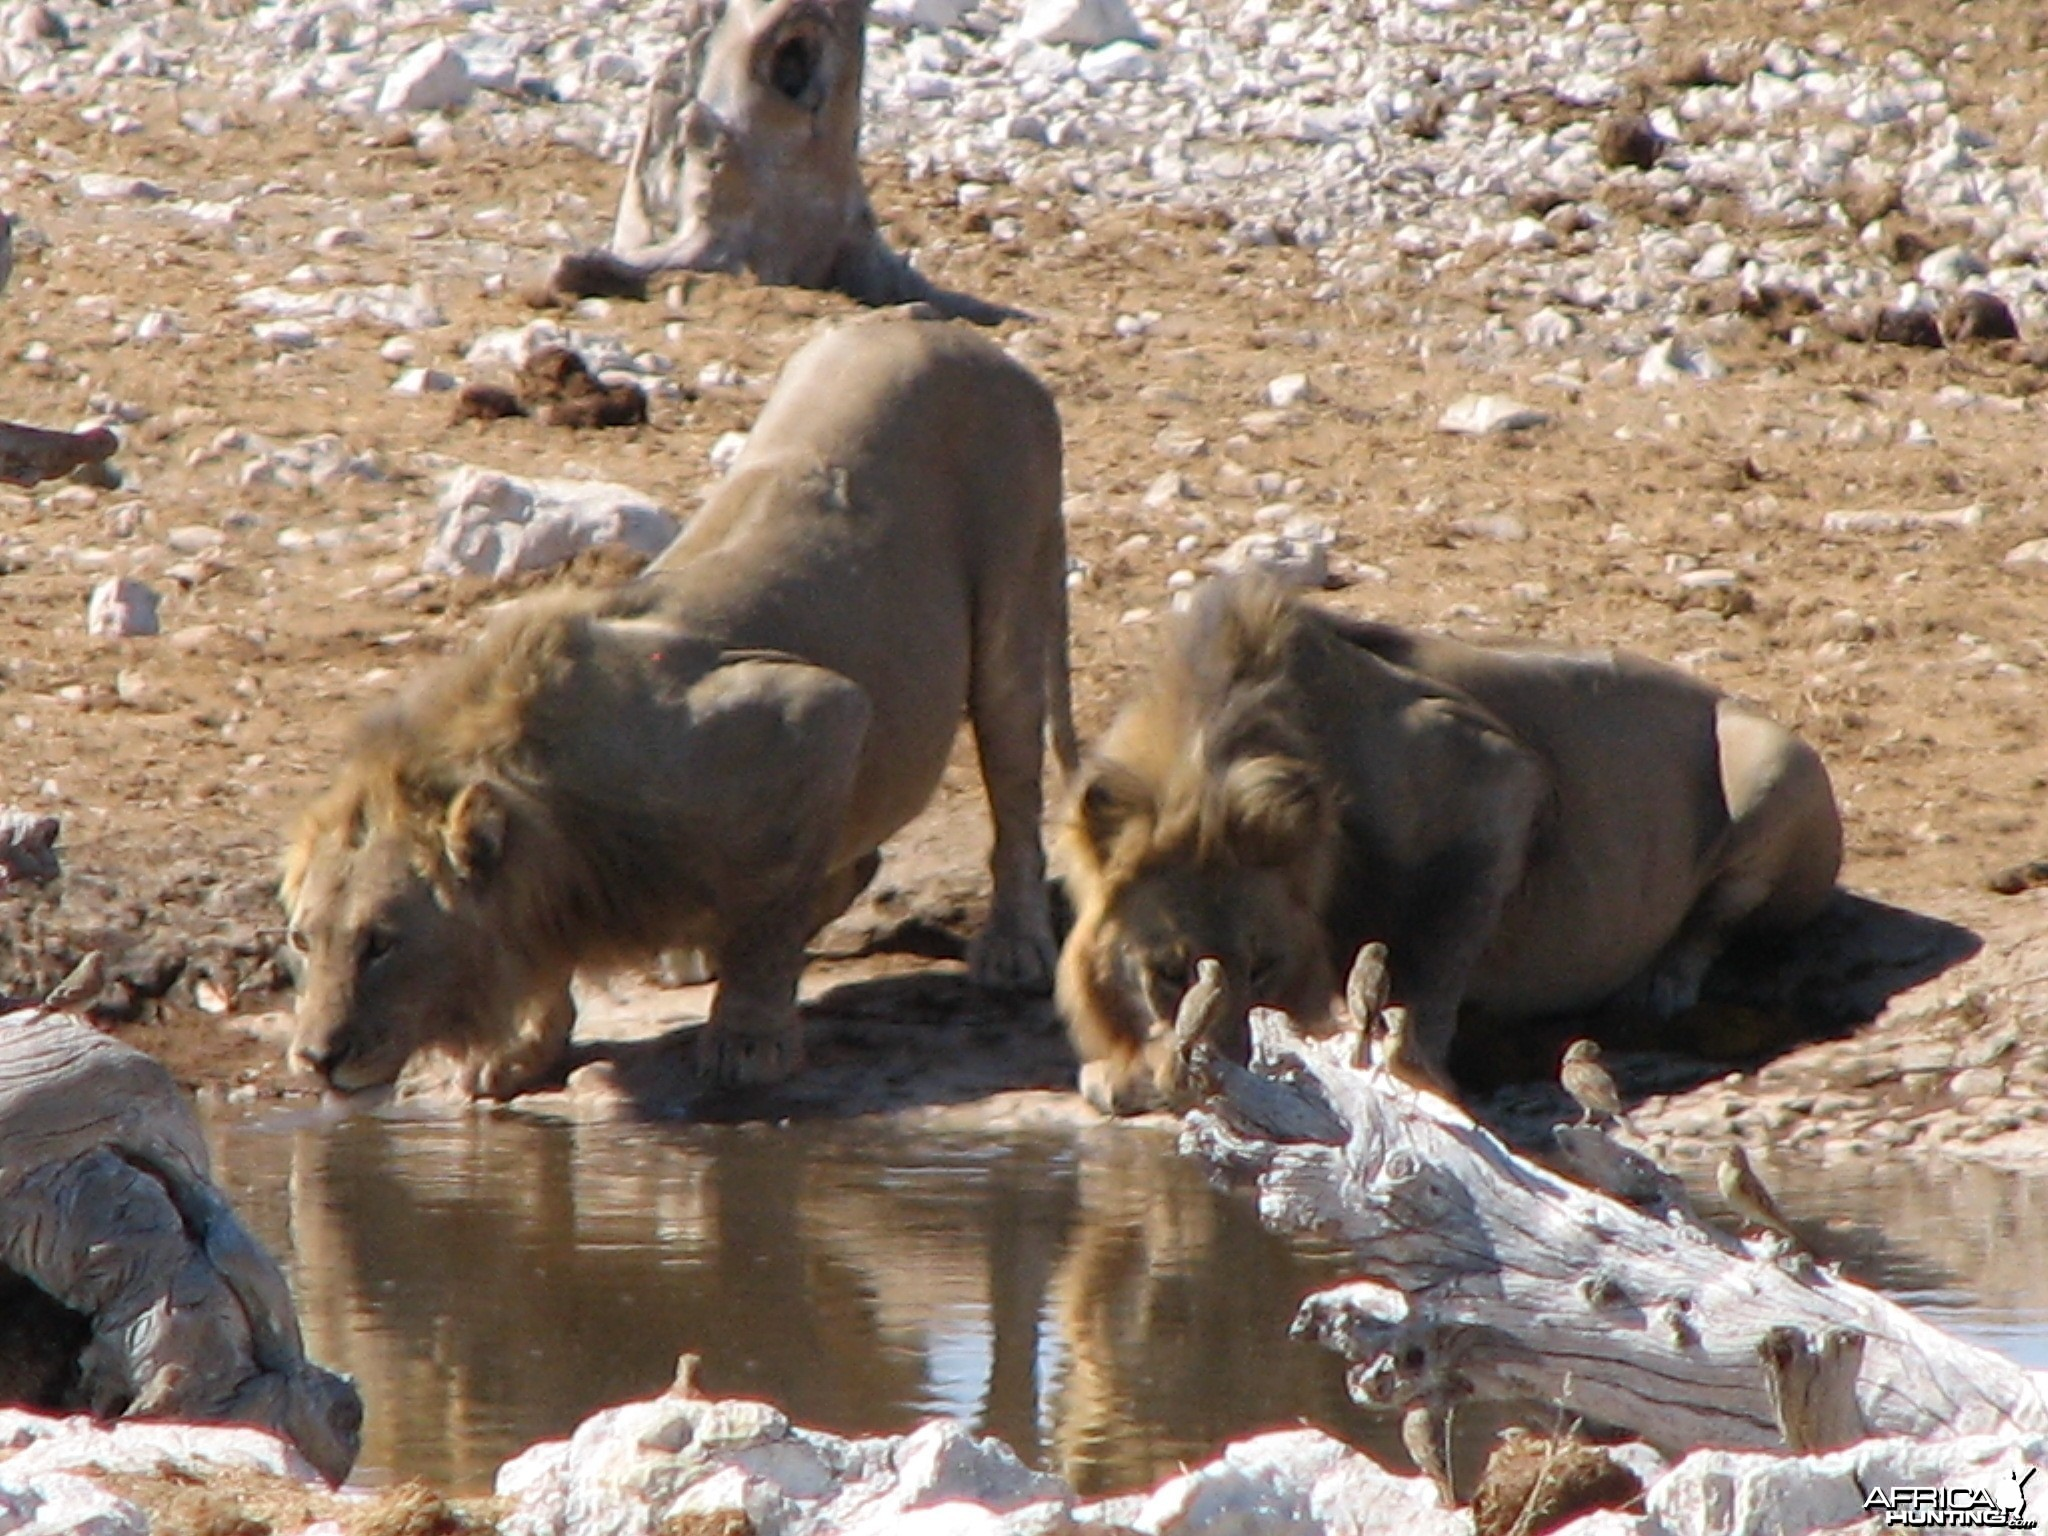 Lions at Etosha National Park, Namibia